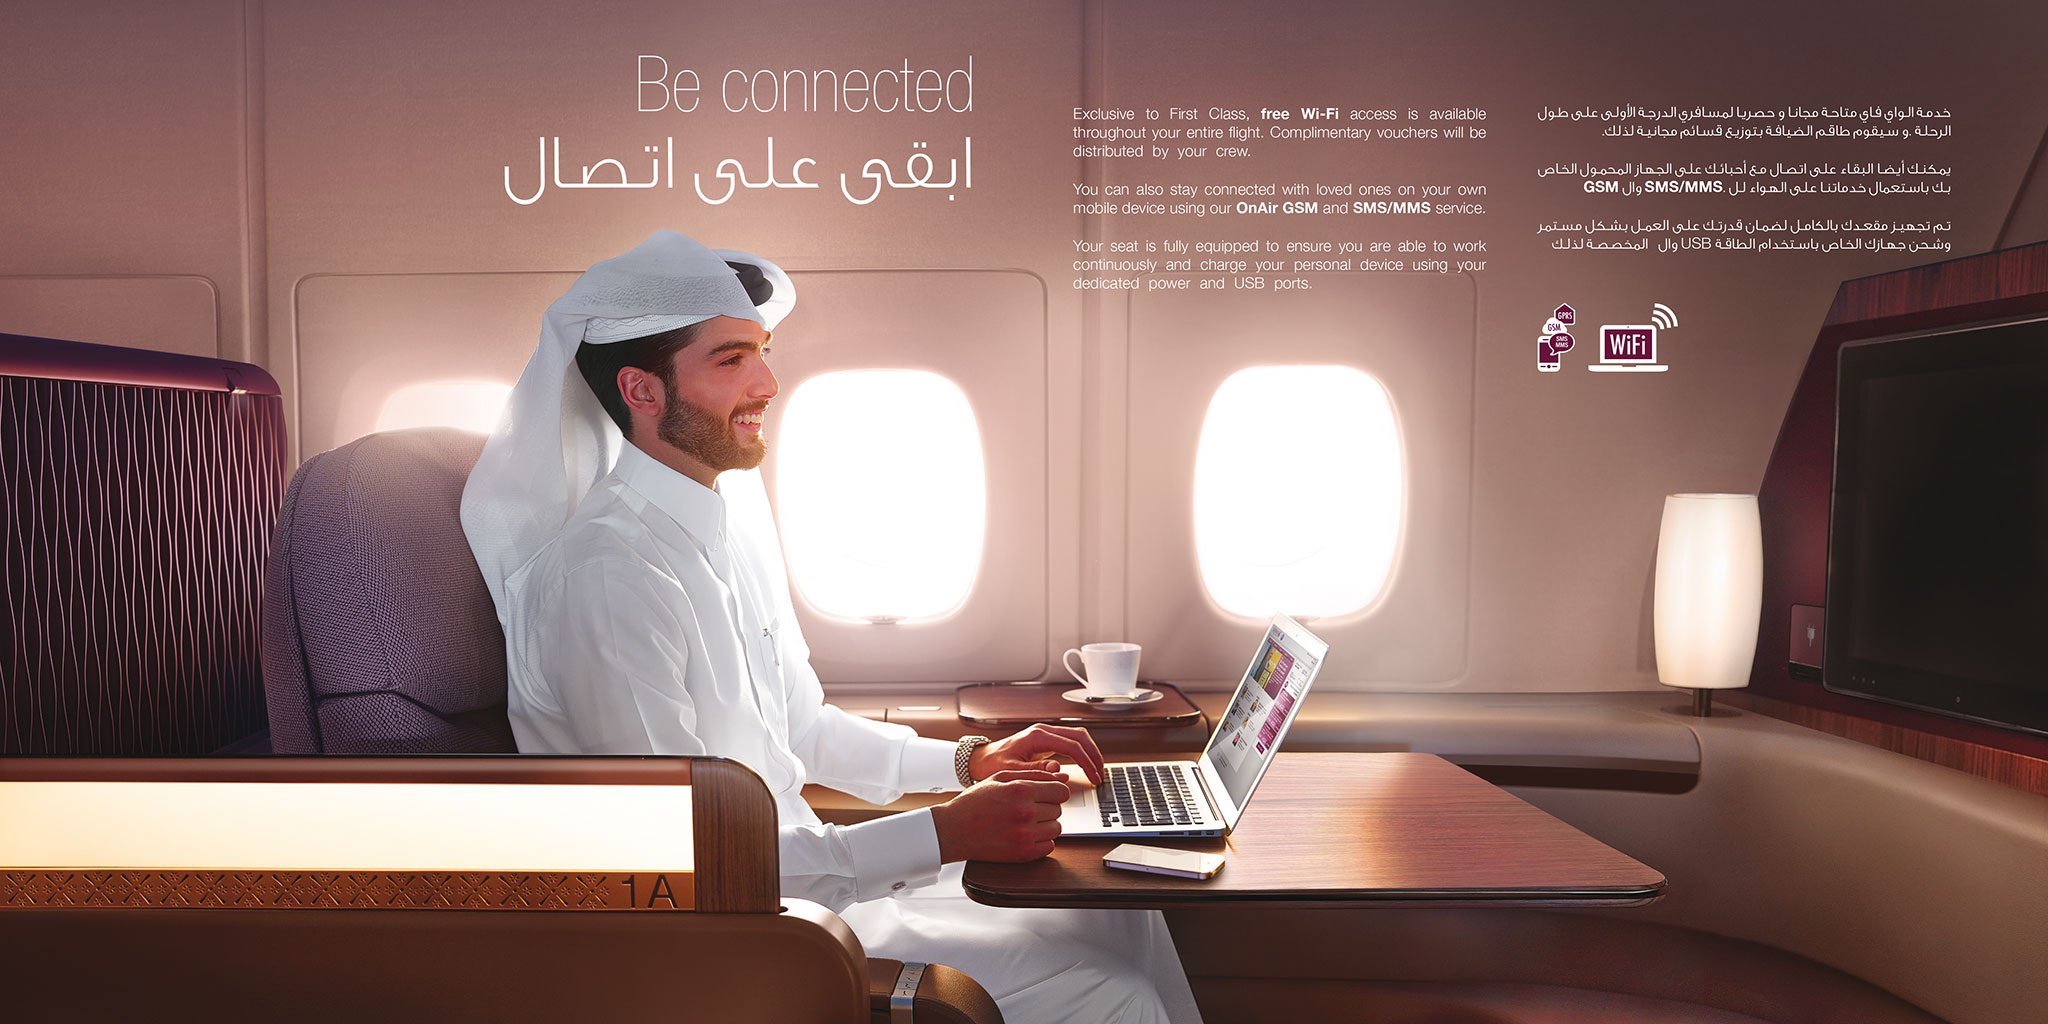 First-Class-Cabin-Guide_FINAL-V8-with-Arabic-HR-10.jpg